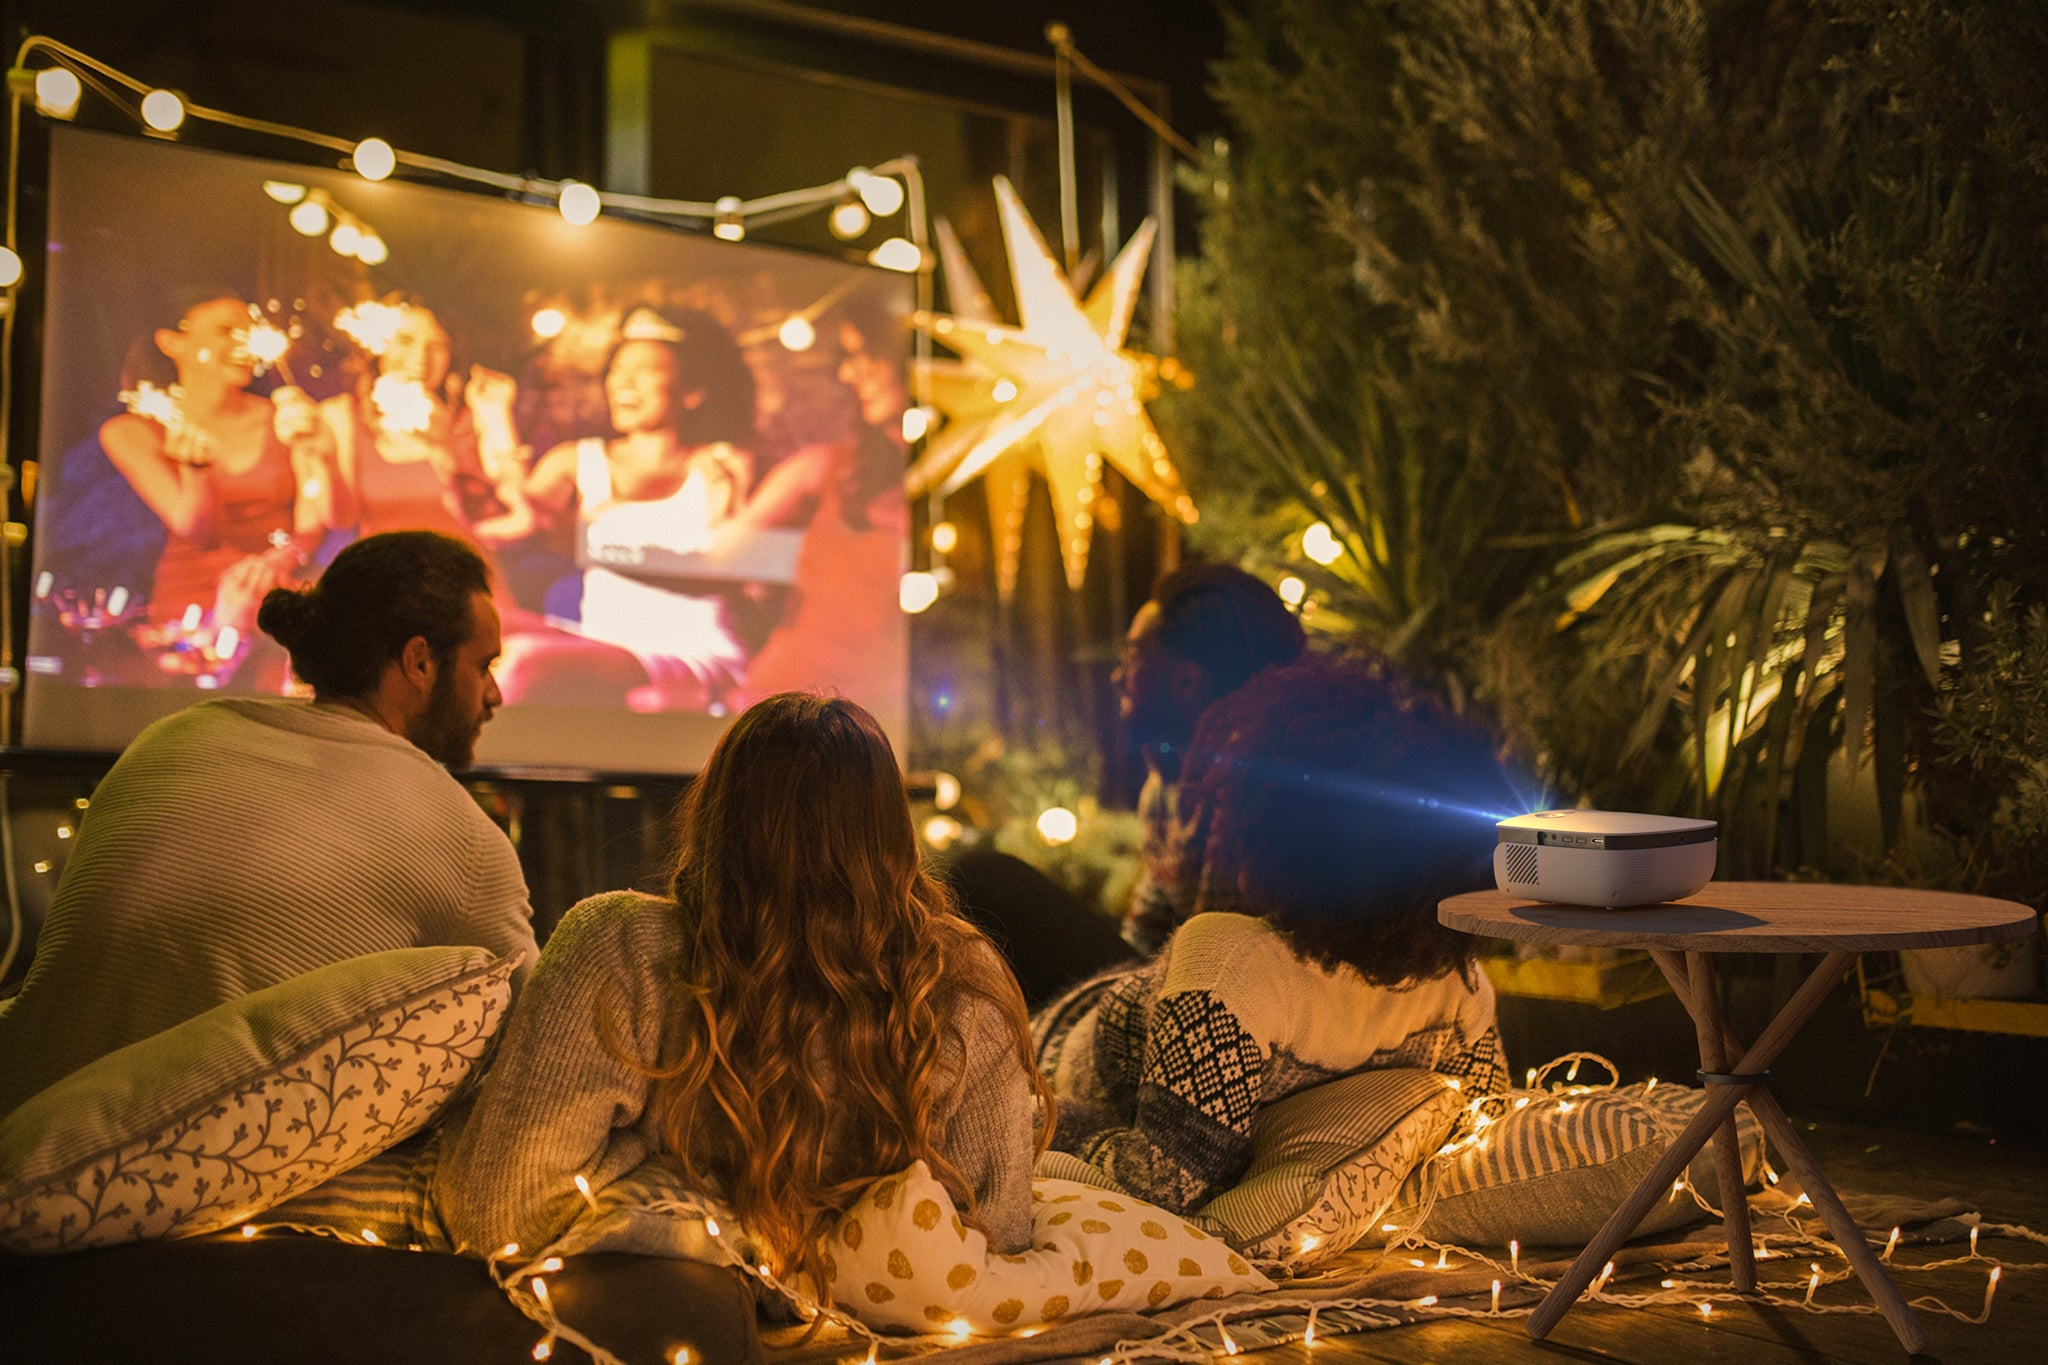 Have an epic outdoor movie party with your friends!